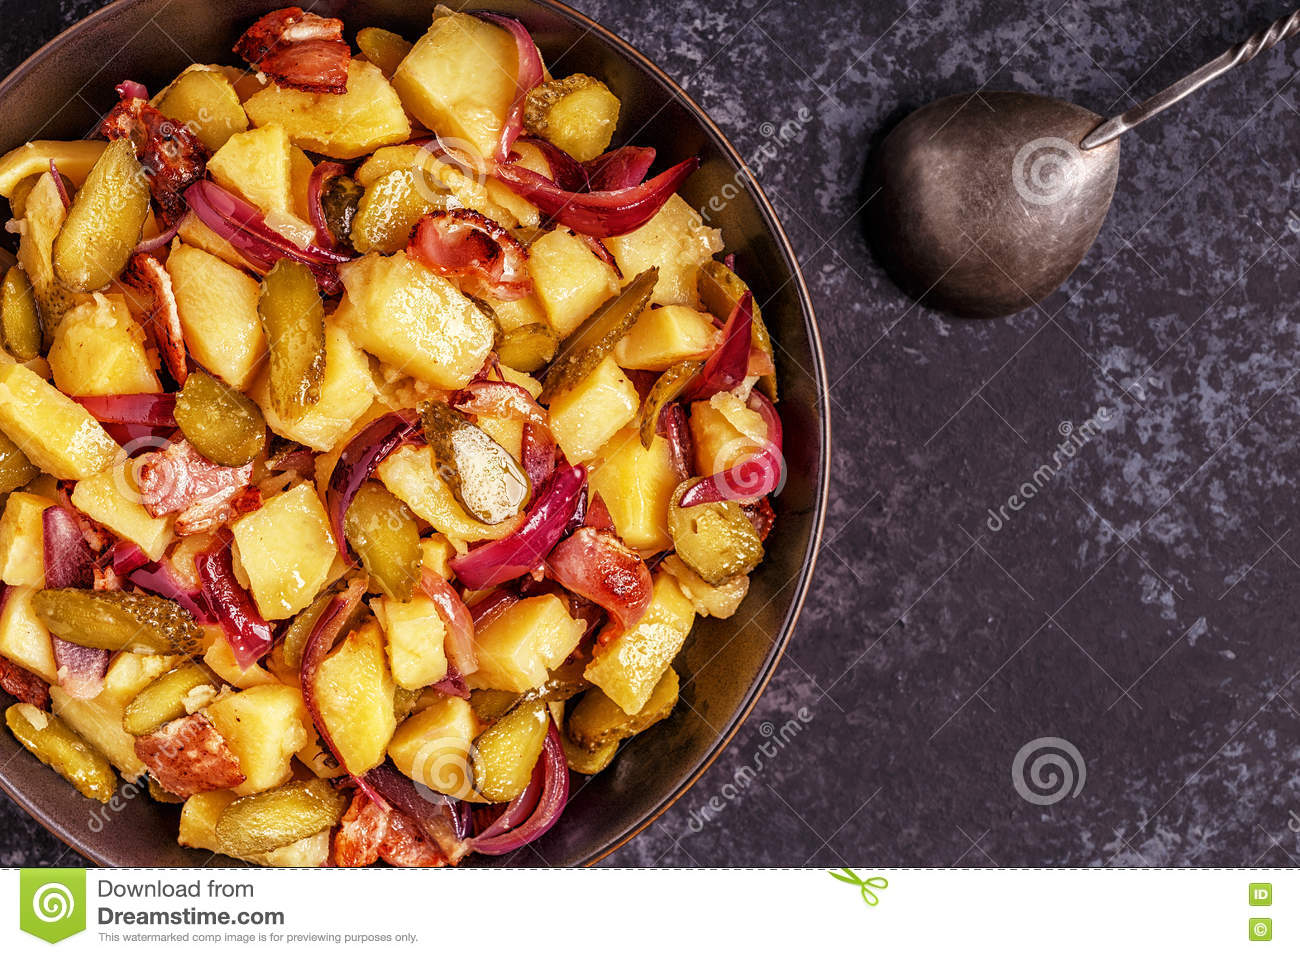 Homemade potato salad with bacon and pickles.